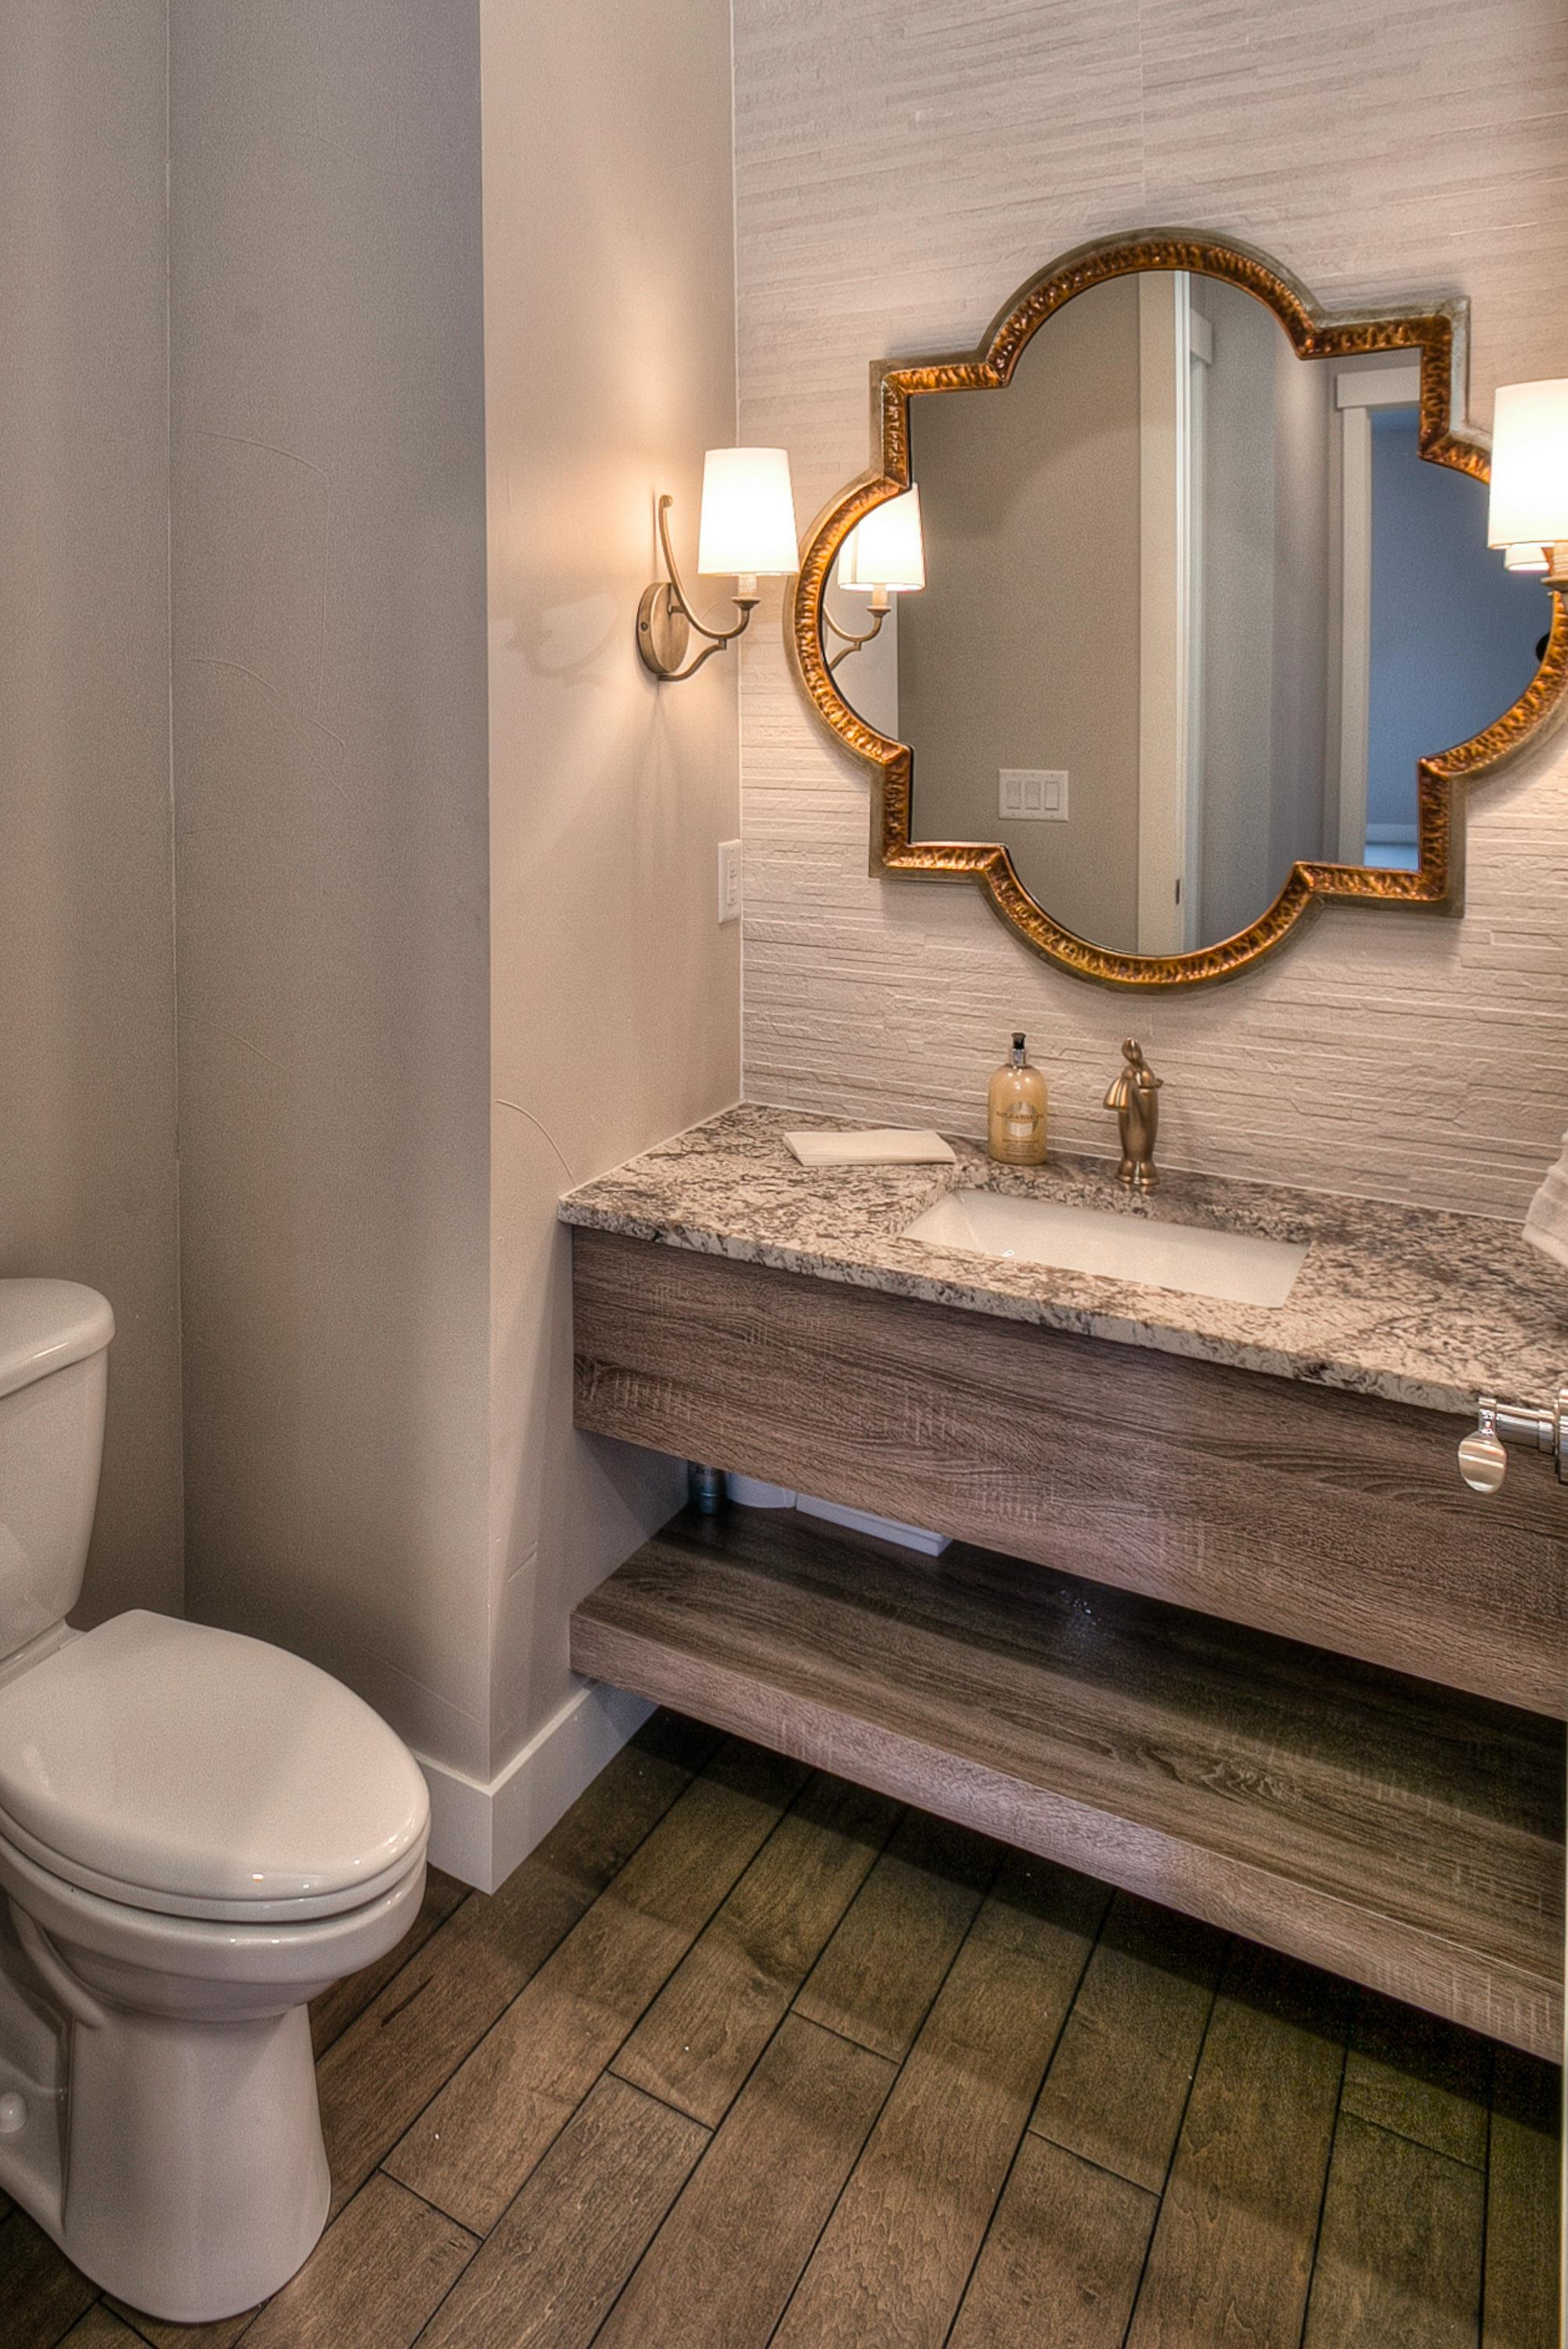 Bathroom featured in The St. Andrews Plan By Landmark Homes  in Greeley, CO